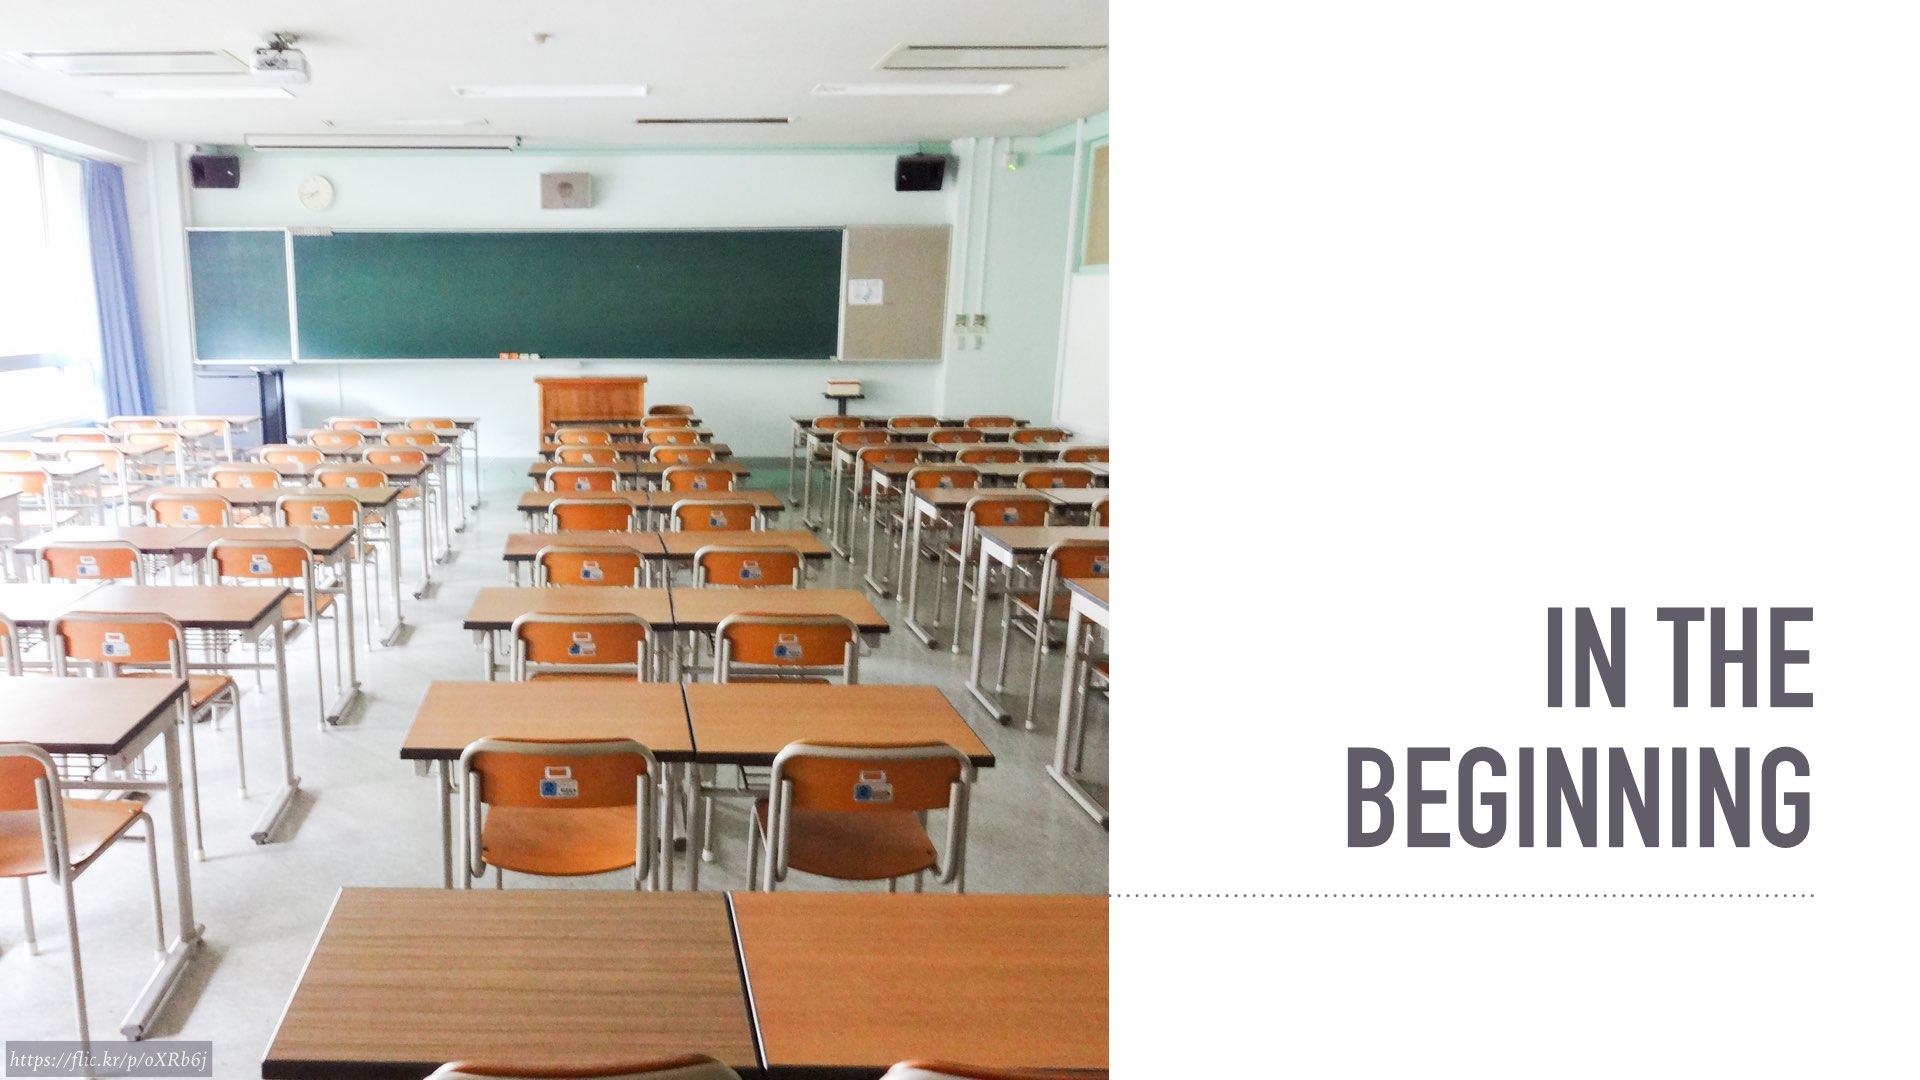 In the beginning: a classroom